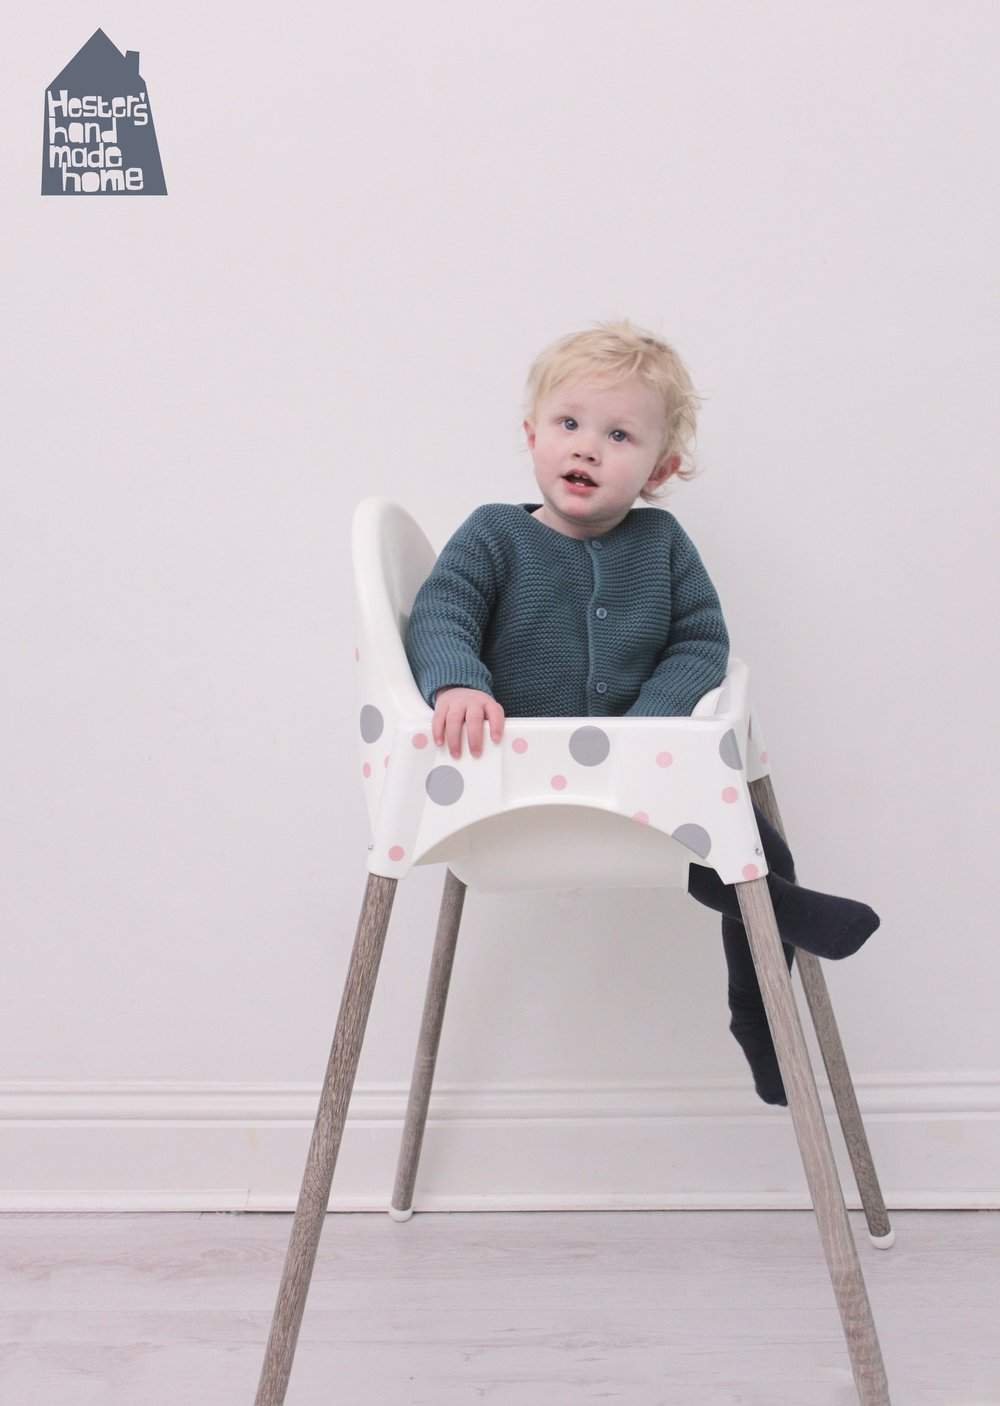 Ikea+highchair+hack+by+www.hestershandmadehome.jpg